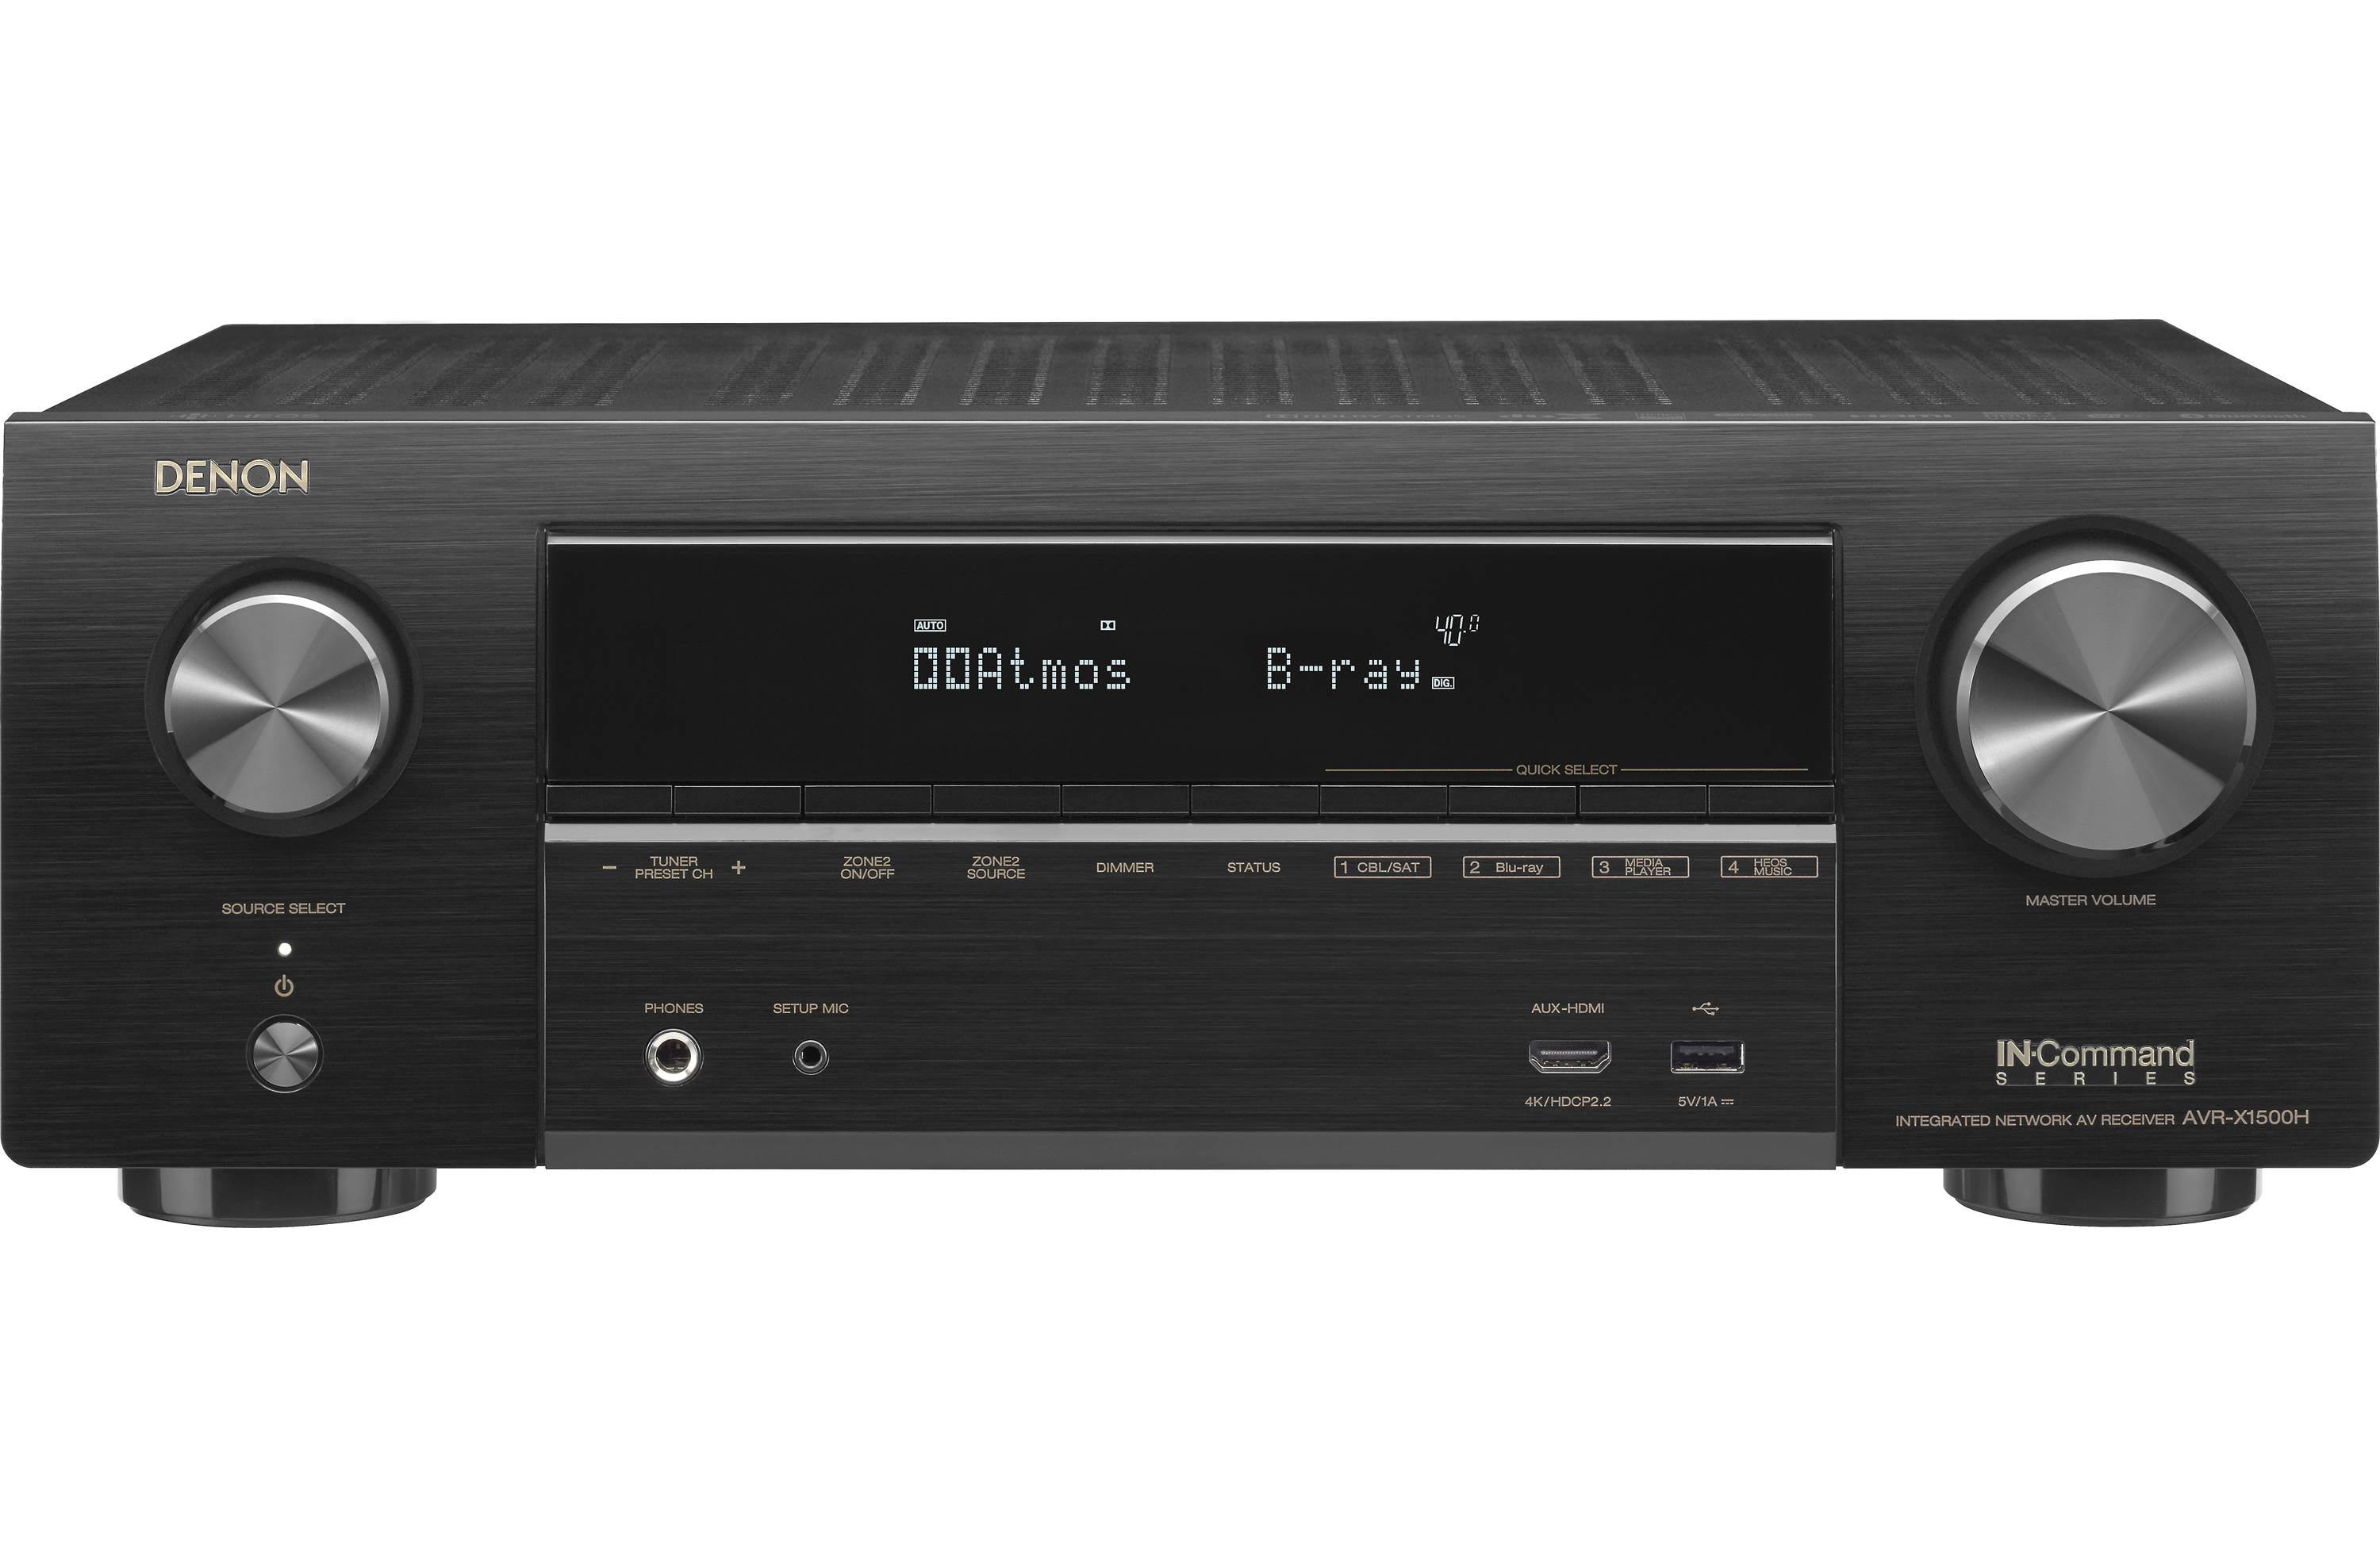 Denon AVR-X1500H Review - Features and Specs | ZKelectronics